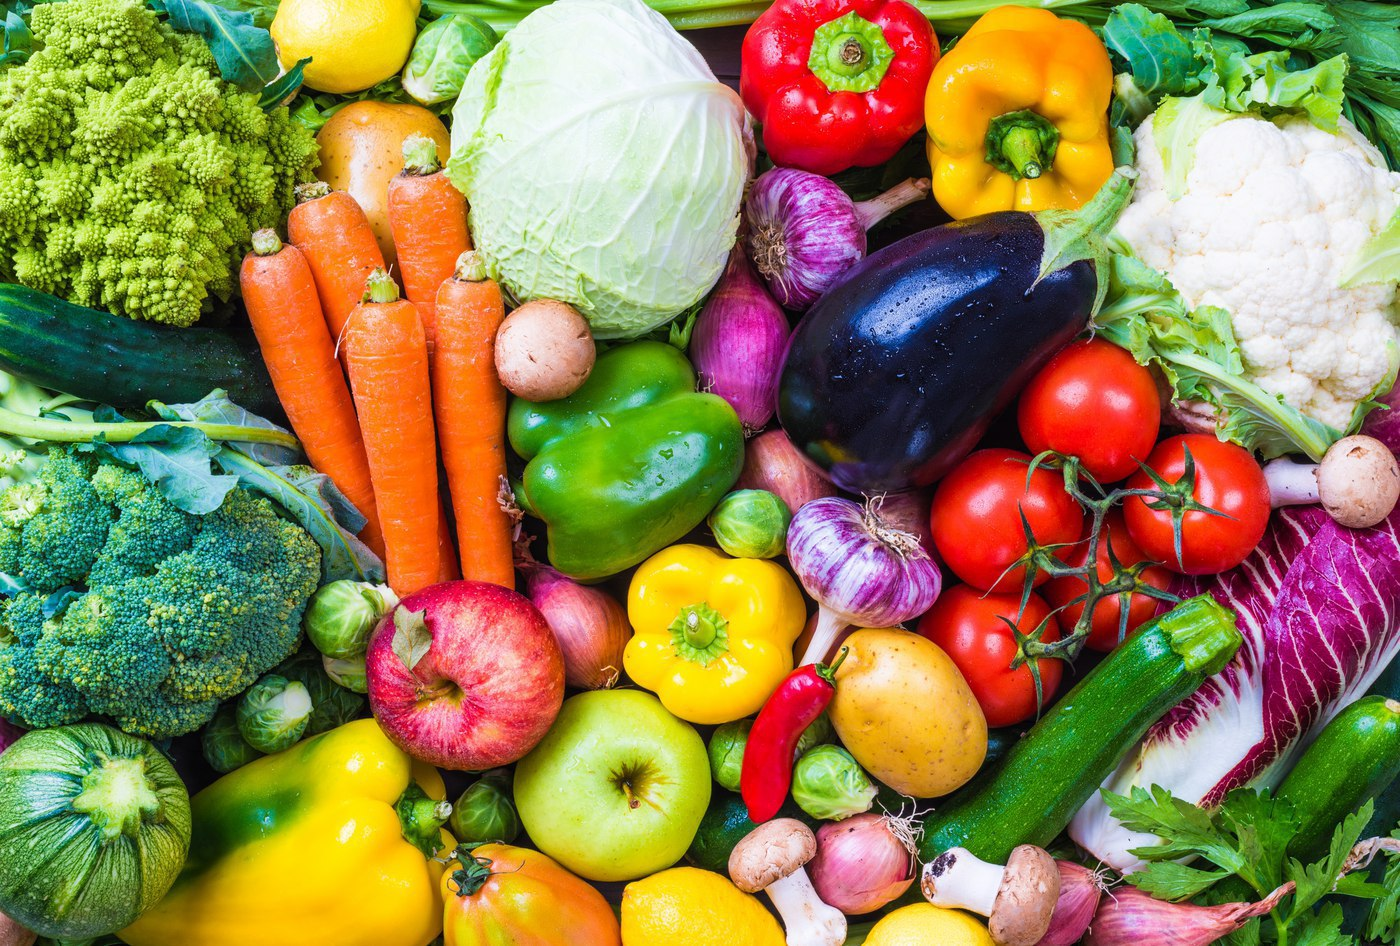 Pesticides: Does Eating Organic Really Matter to Fertility?